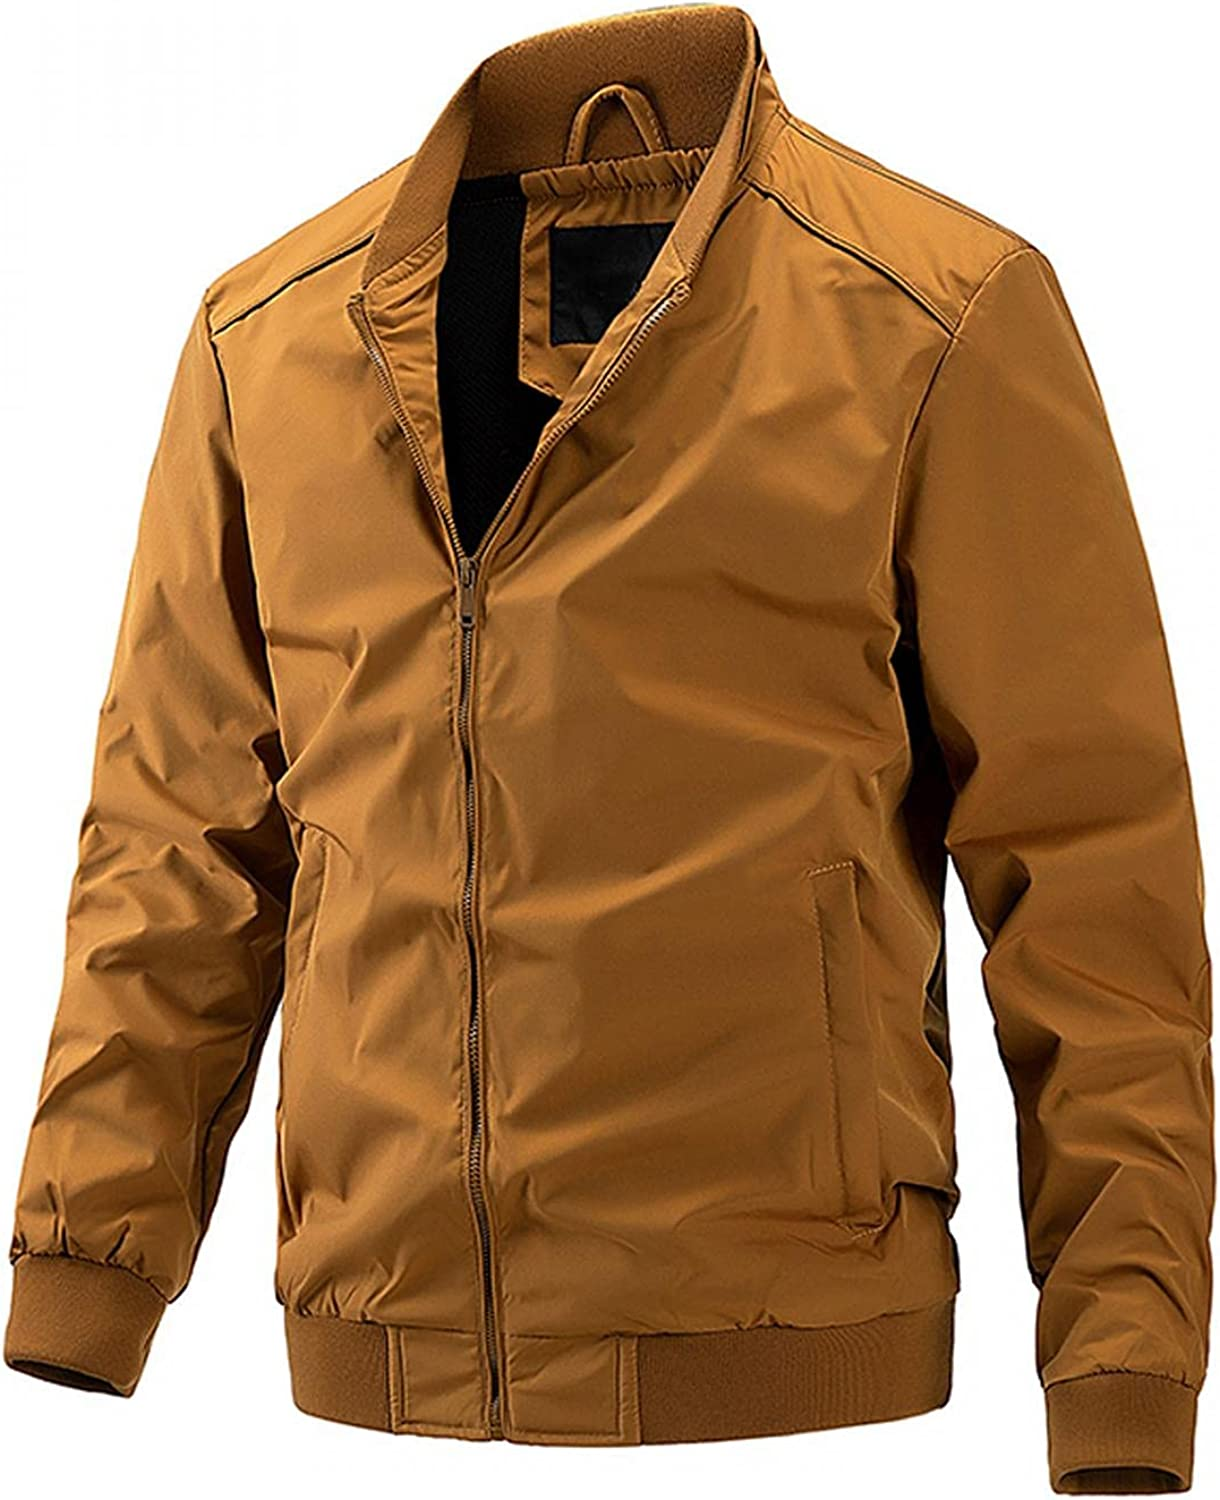 SUIQU Men's Casual Military Windproof Lightweight Bomber Jacket Water Repellent Long Sleeve Pockets Coats Blouse Jacket